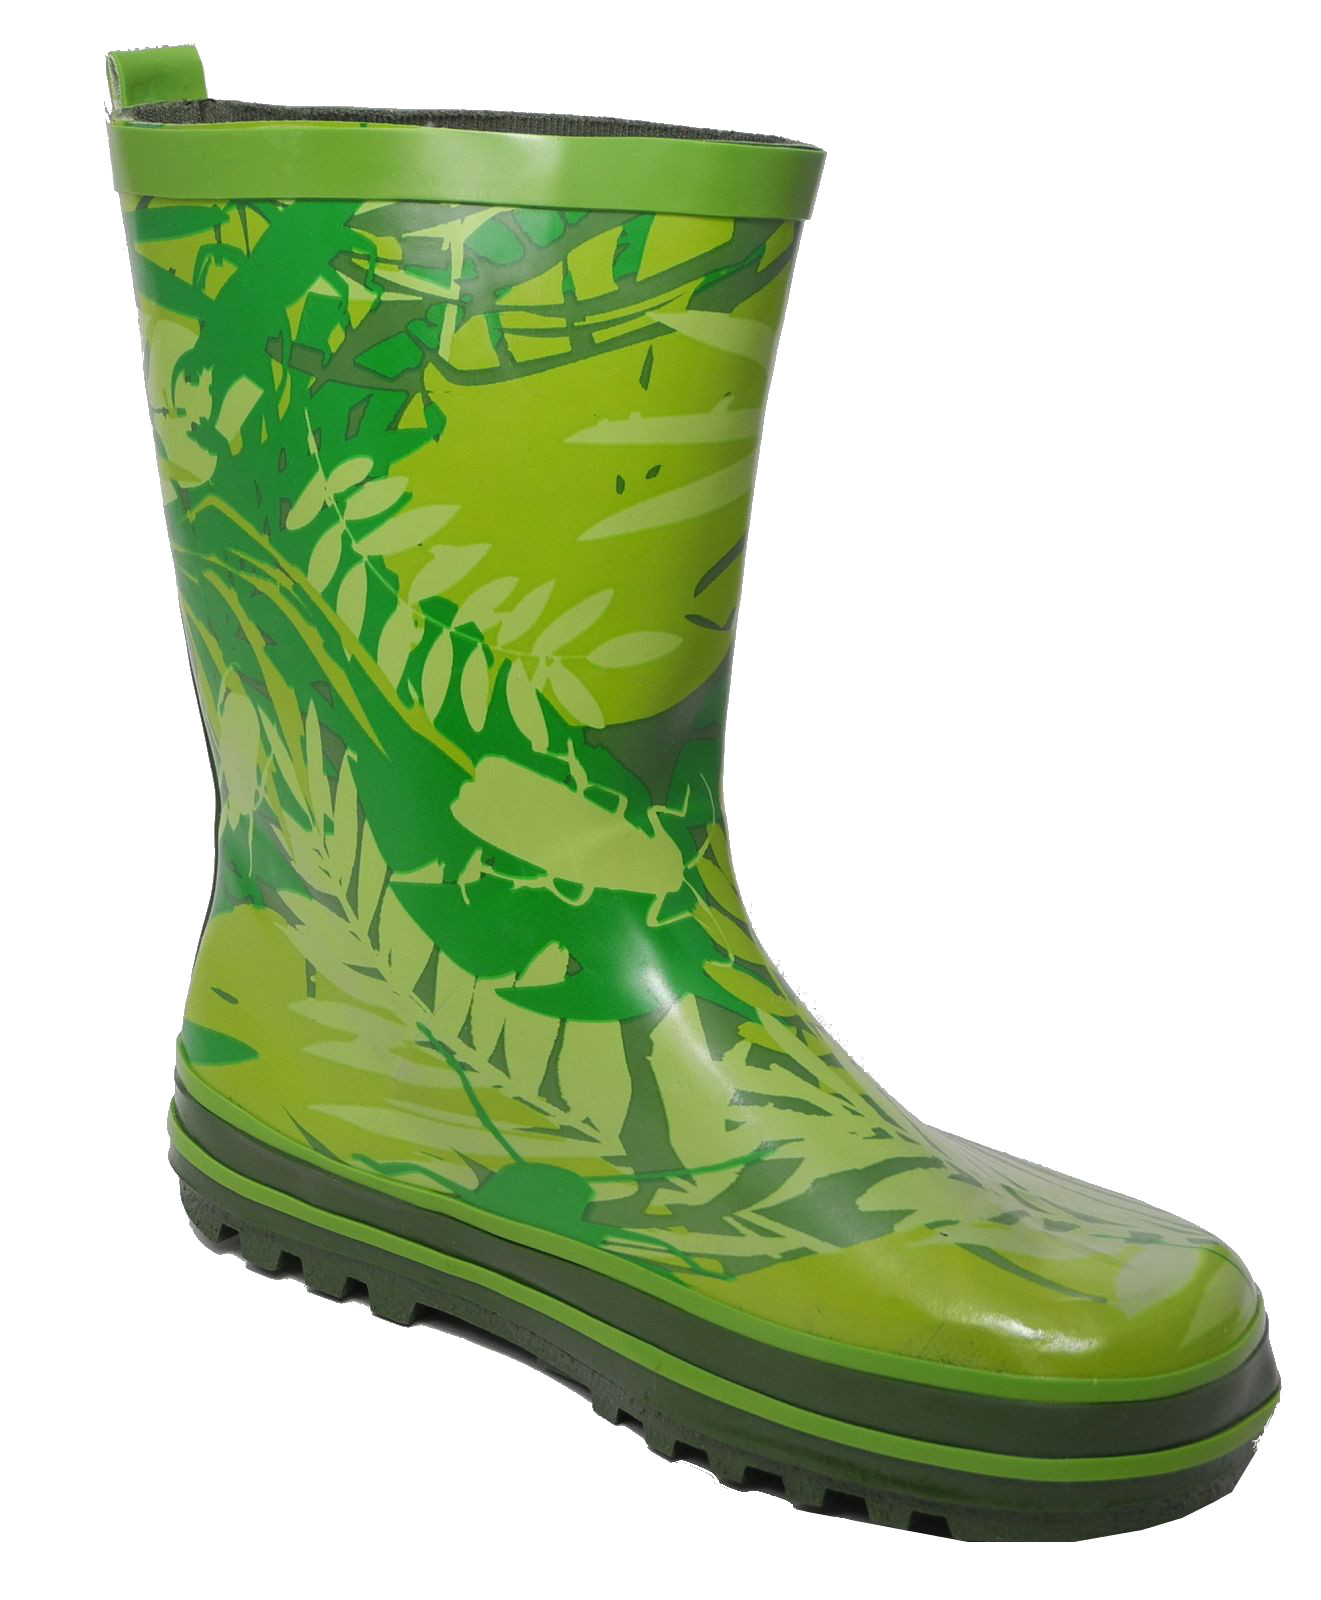 results for boys green wellies Save boys green wellies to get e-mail alerts and updates on your eBay Feed. Unfollow boys green wellies to stop getting updates on your eBay feed.